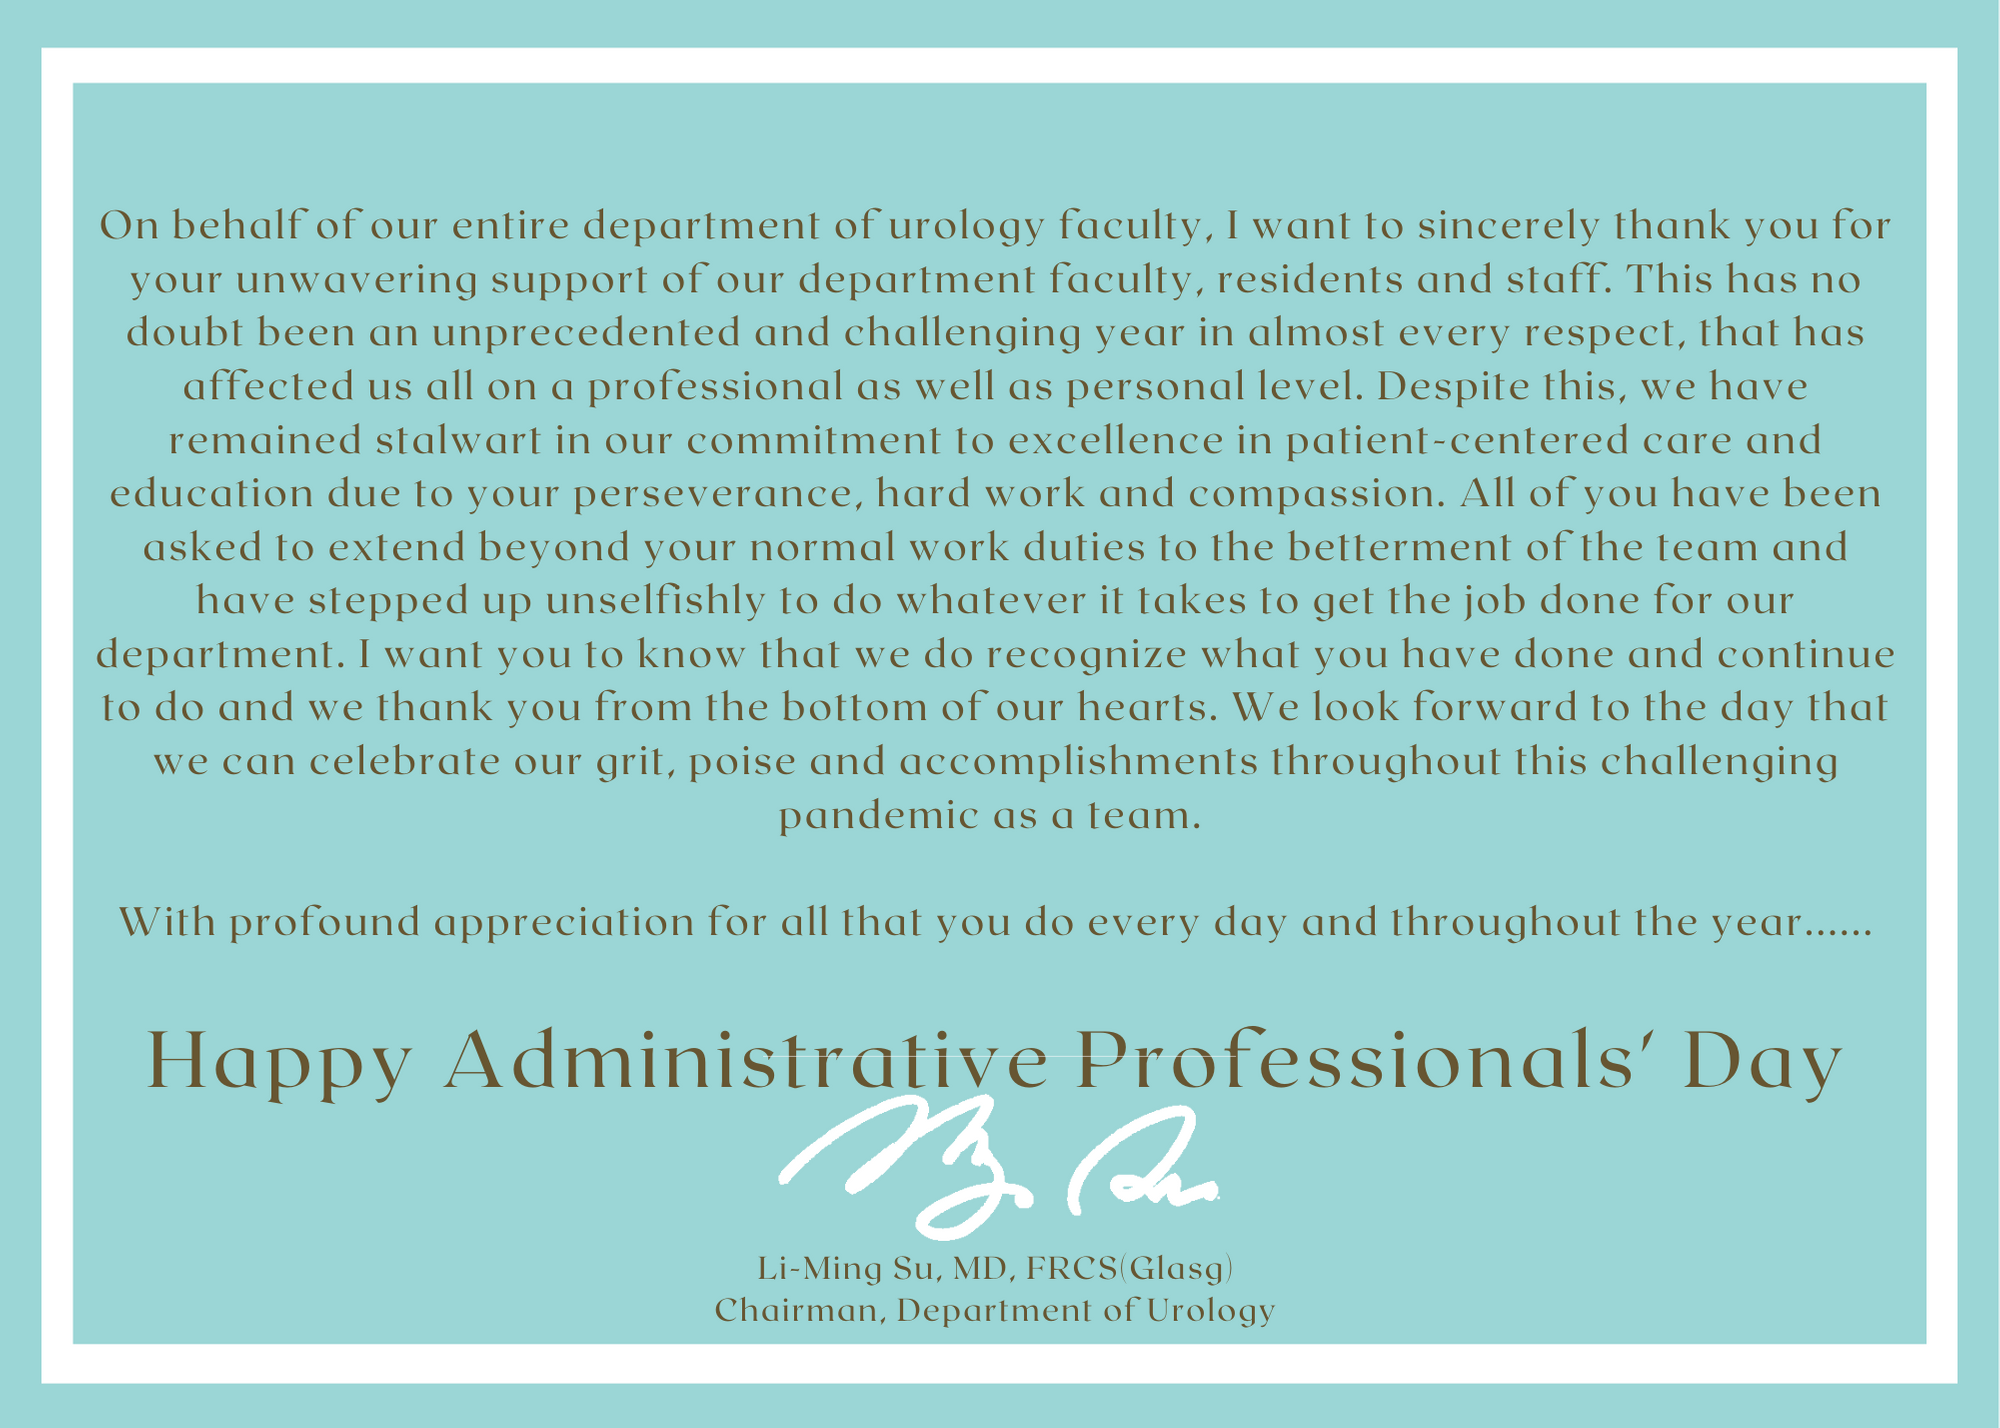 a teal blue card with a white border. the text is On behalf of our entire department of urology faculty, I want to sincerely thank you for your unwavering support of our department faculty, residents and staff. This has no doubt been an unprecedented and challenging year in almost every respect, that has affected us all on a professional as well as personal level. Despite this, we have remained stalwart in our commitment to excellence in patient-centered care and education due to your perseverance, hard work and compassion. All of you have been asked to extend beyond your normal work duties to the betterment of the team and have stepped up unselfishly to do whatever it takes to get the job done for our department. I want you to know that we do recognize what you have done and continue to do and we thank you from the bottom of our hearts. We look forward to the day that we can celebrate our grit, poise and accomplishments throughout this challenging pandemic as a team. With profound appreciation for all that you do every day and throughout the year......Happy Administrative Professionals' Day Li-Ming Su, MD, FRCS(Glasg) Chairman, Department of Urology